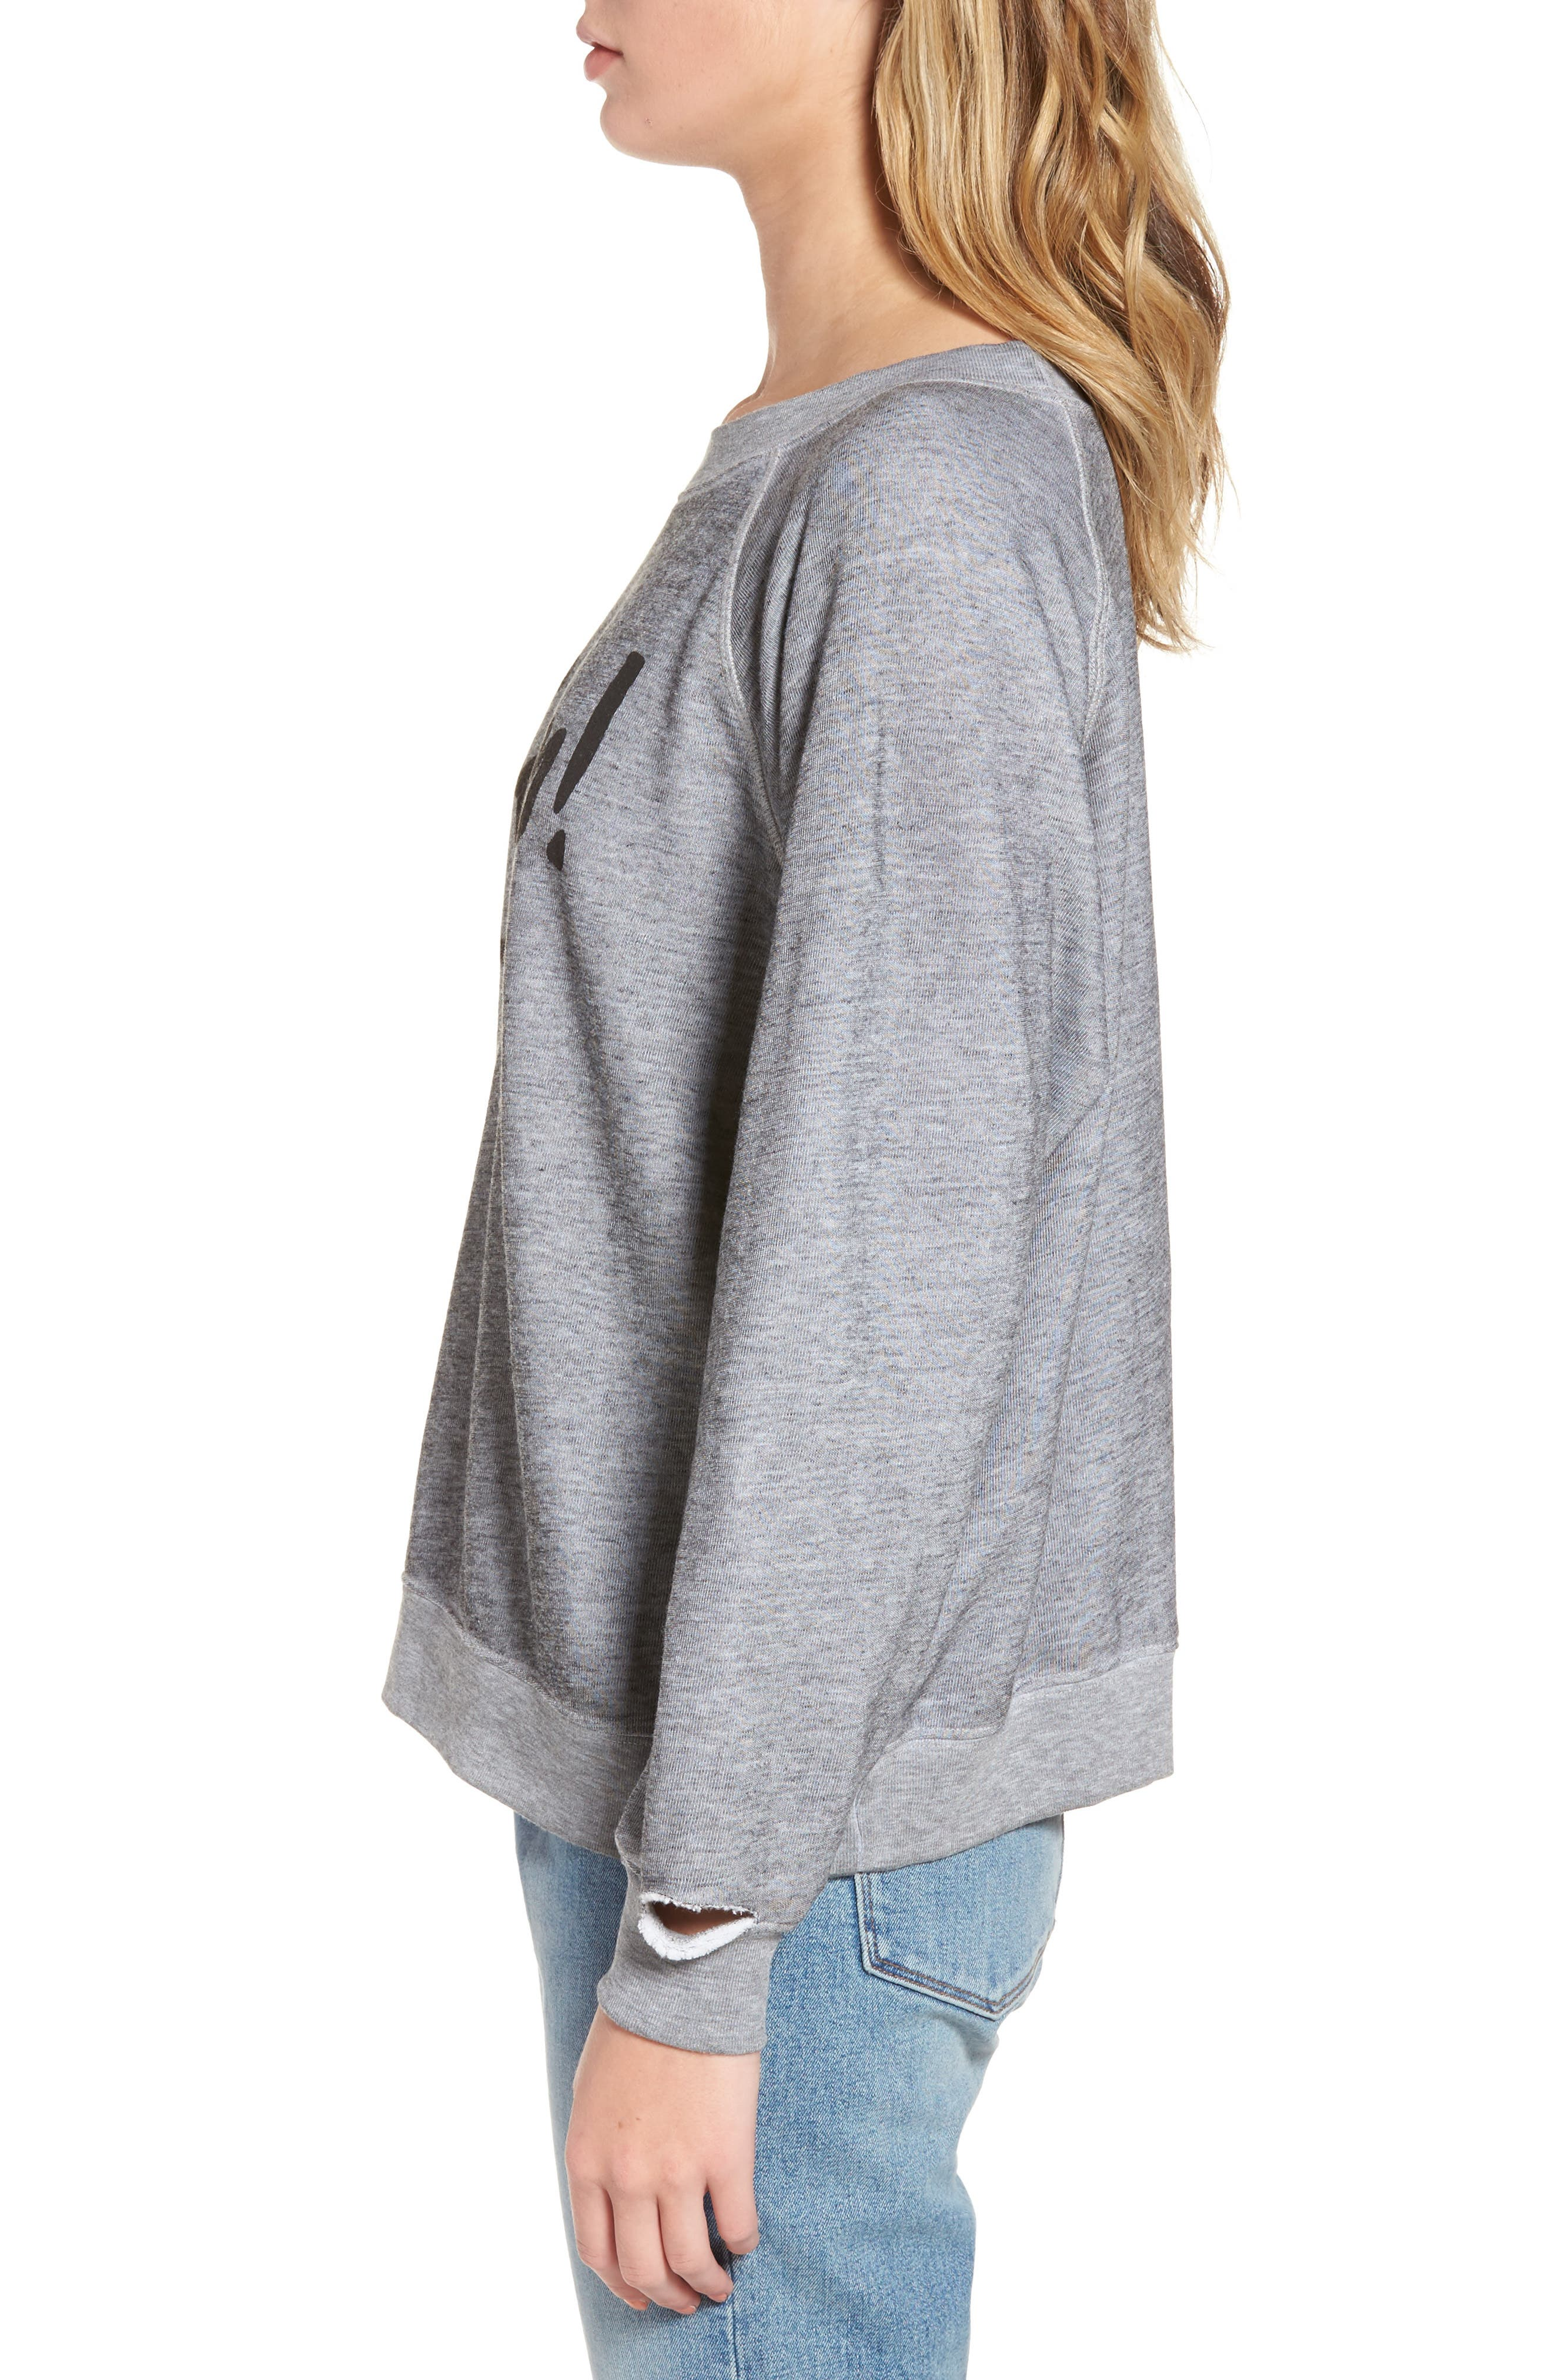 Gasp Thrashed Sommers Sweatshirt,                             Alternate thumbnail 3, color,                             020